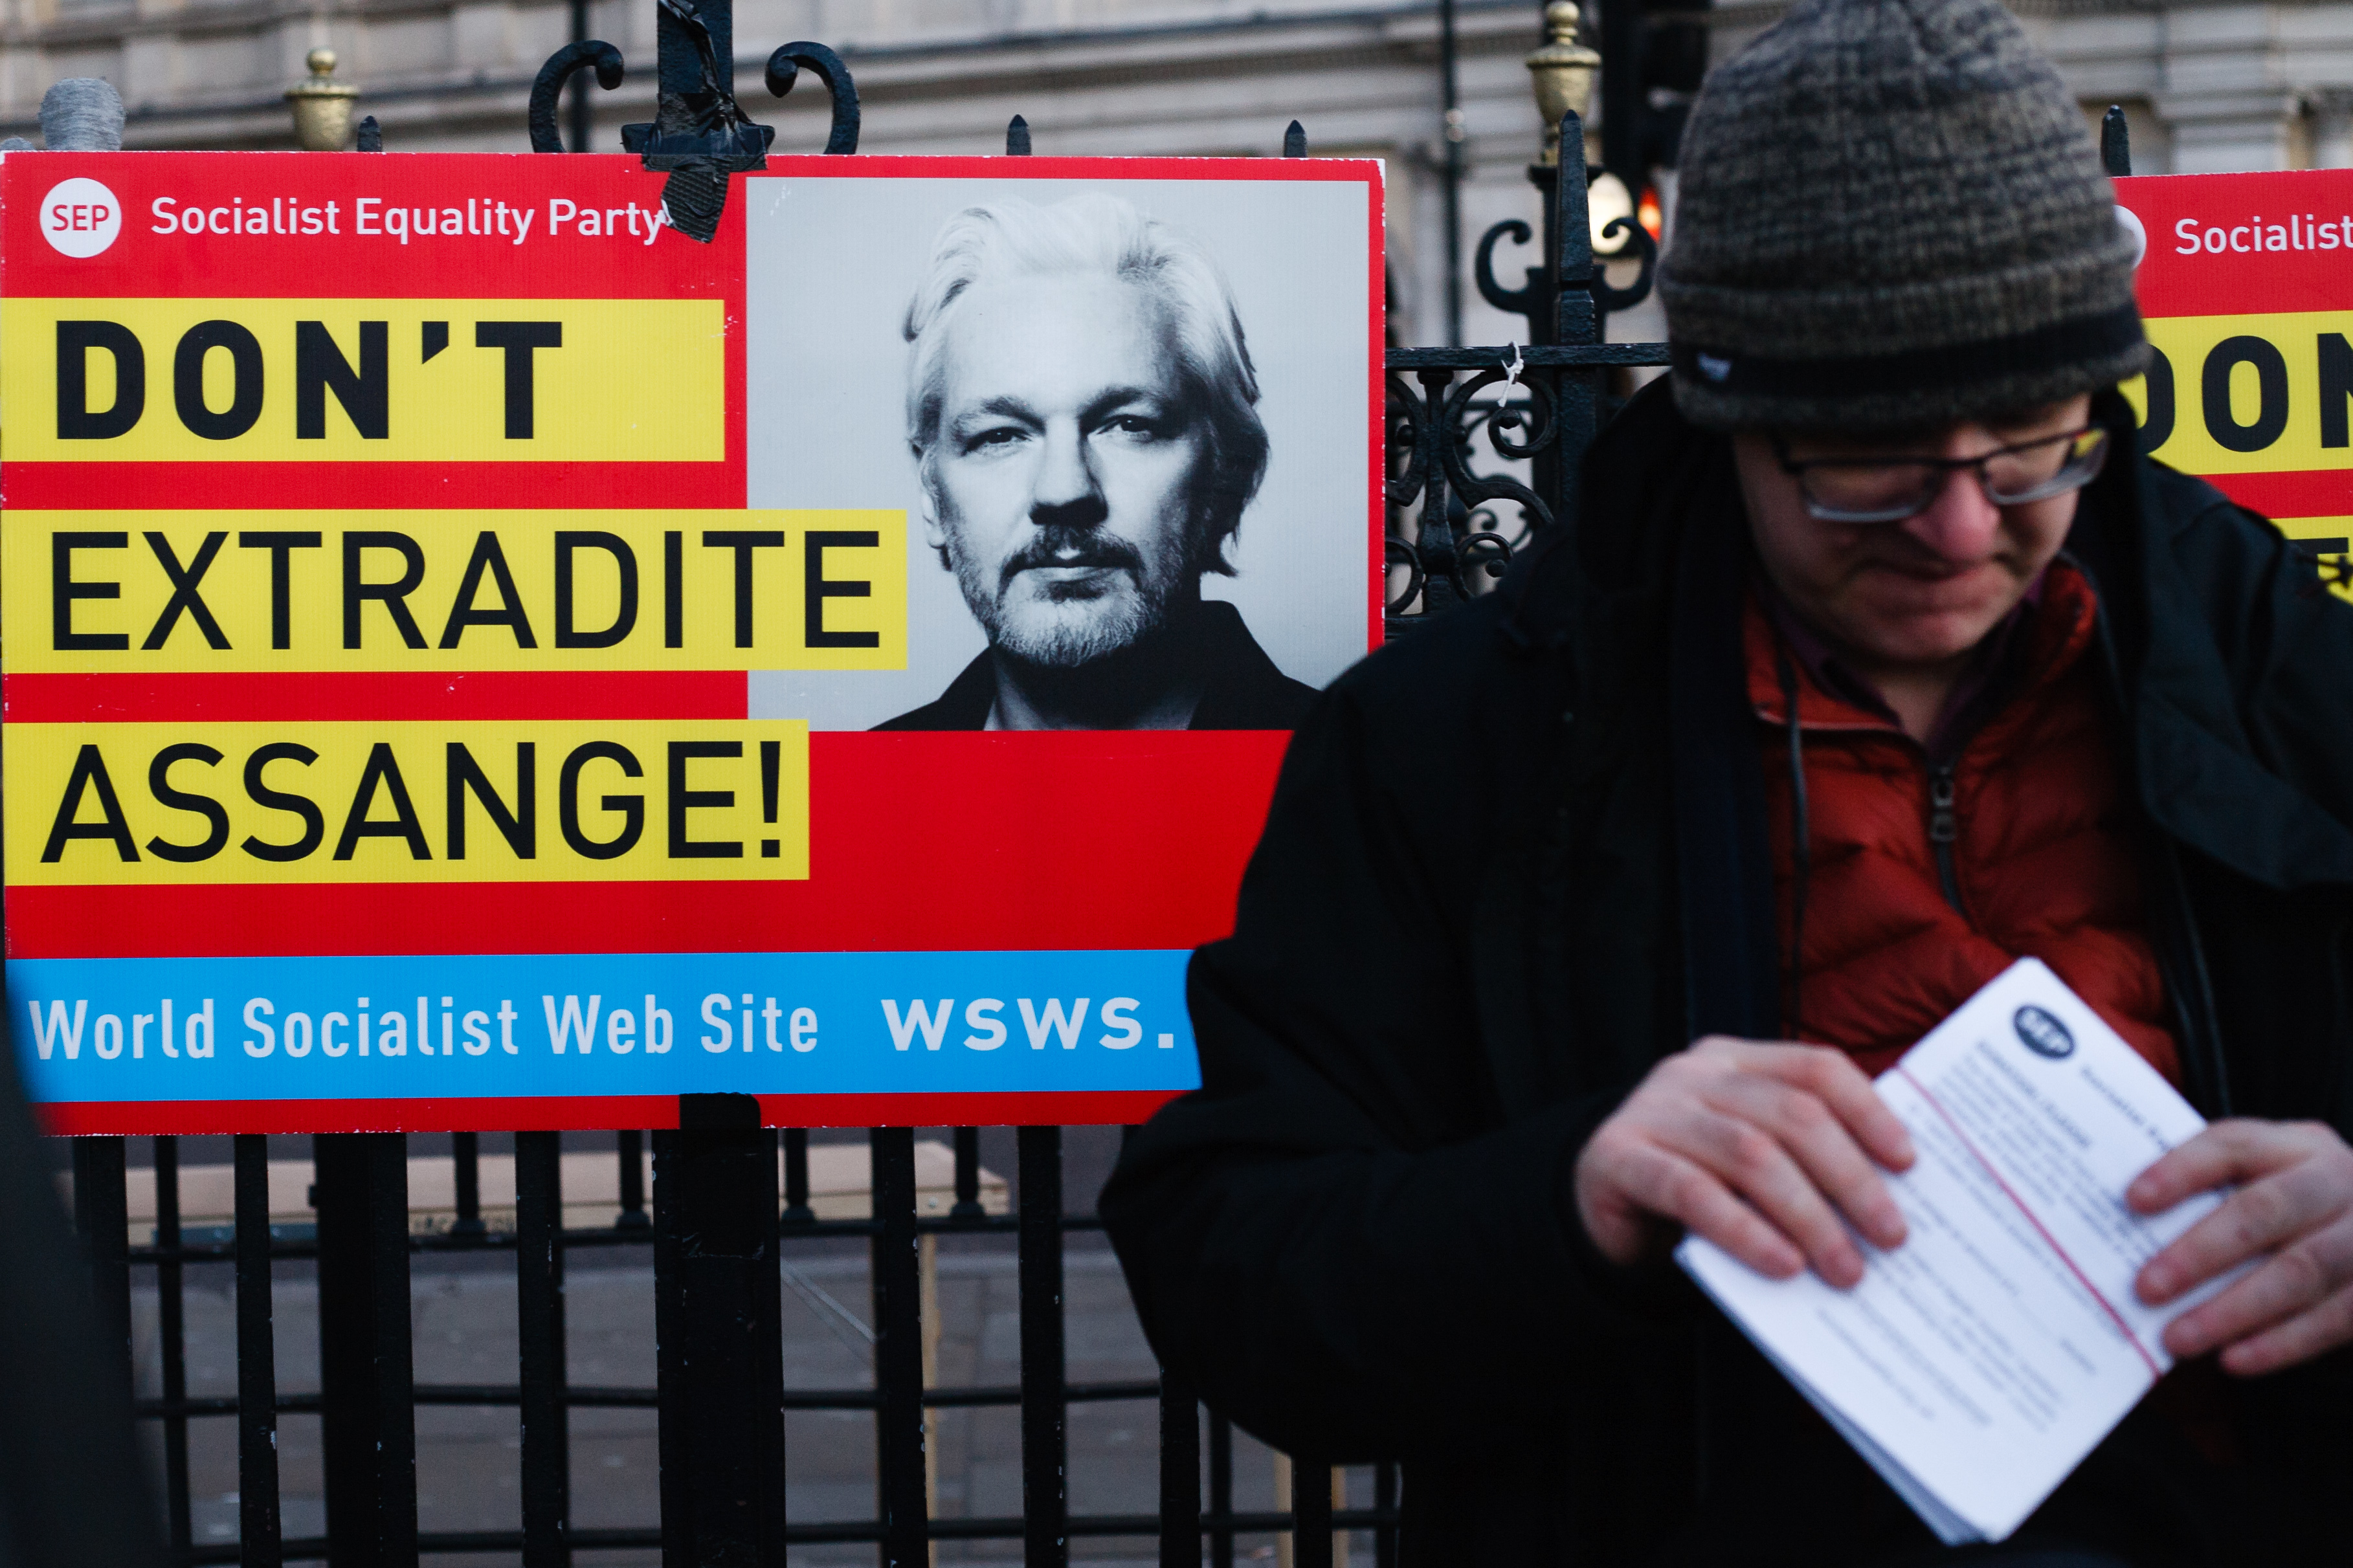 An activist stands next to a poster opposing extradition of Wikileaks founder, Julian Assange during the demonstration. President Trump arrived in the UK on a three-day visit last night, chiefly to attend the NATO summit in Watford. Activists protest against Trump�s visit in Trafalgar Square. (Photo by David Cliff / SOPA Images/Sipa USA)